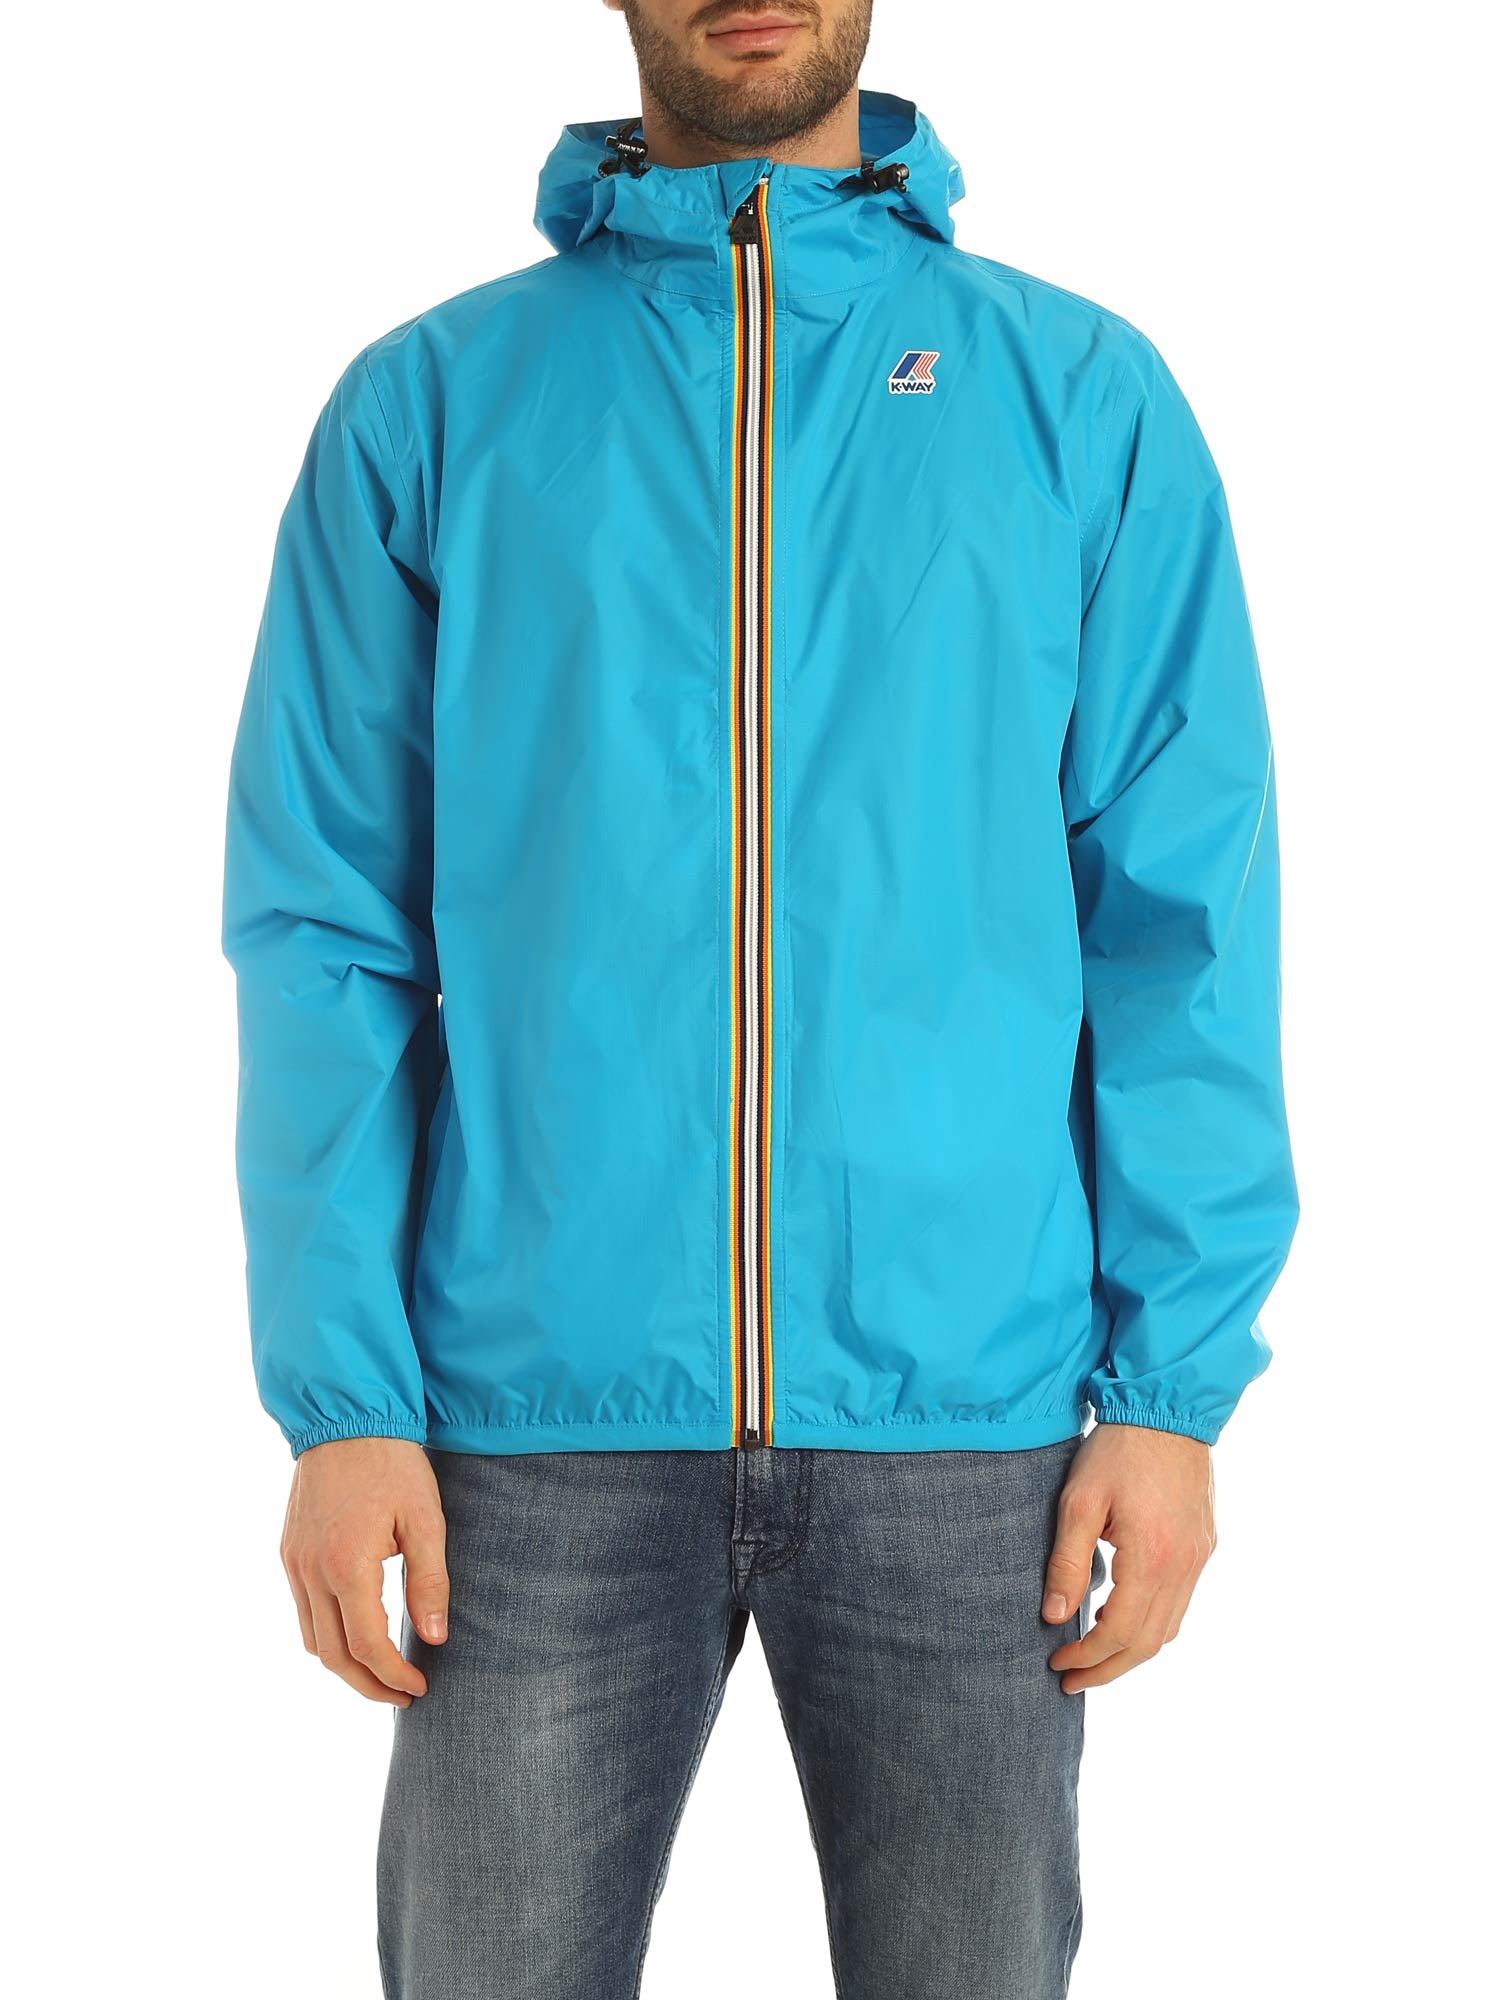 K-Way LE VRAI 3.0 CLAUDE JACKET IN TURQUOISE